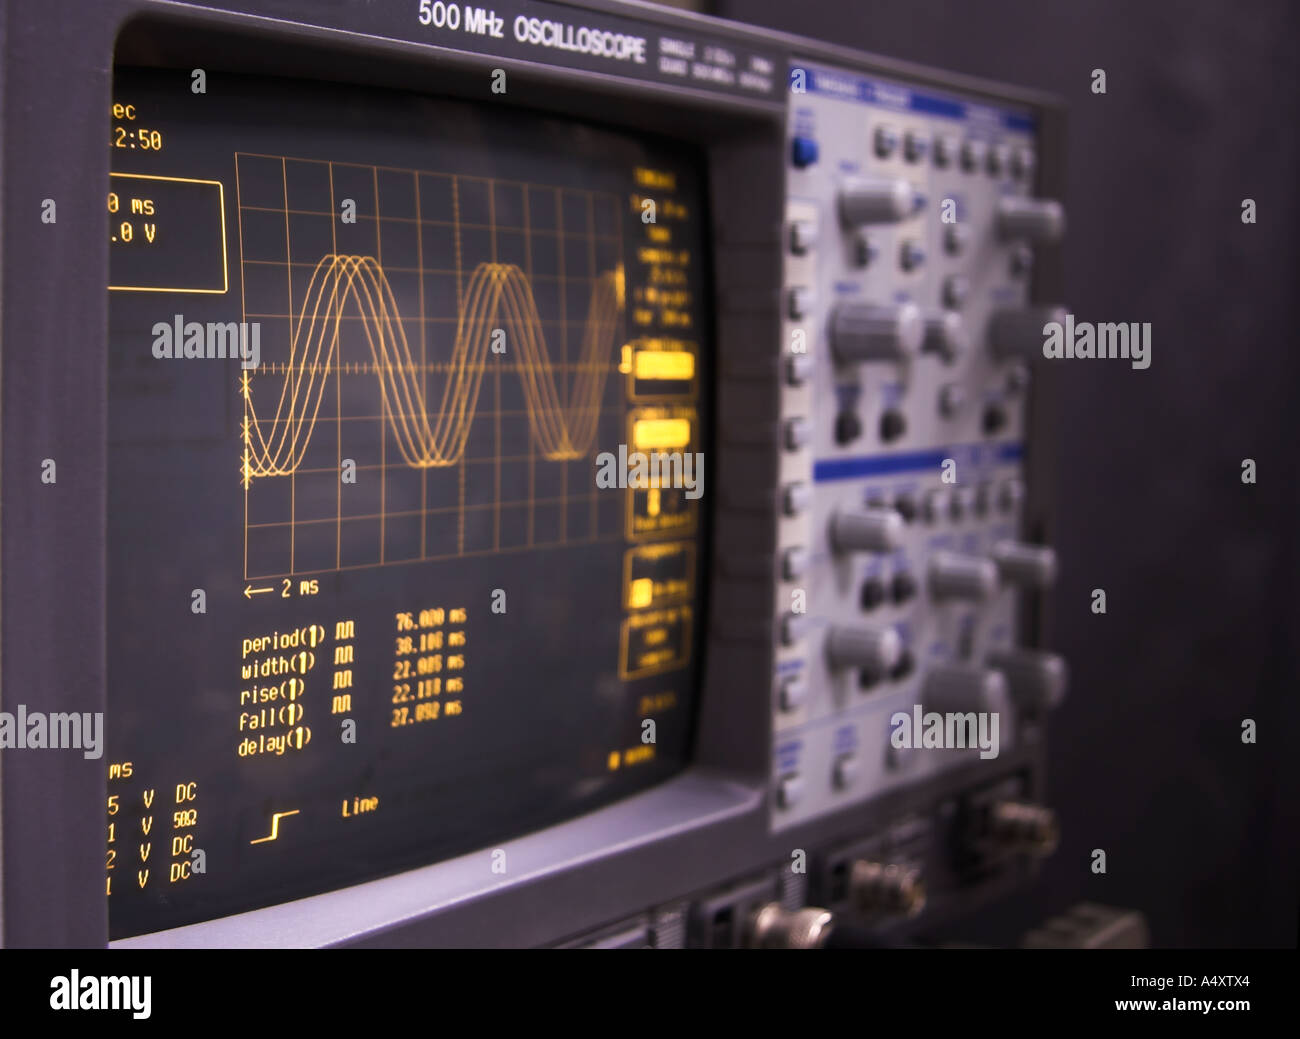 A modern digital LeCroy oscilloscope, brand name retouched out - Stock Image